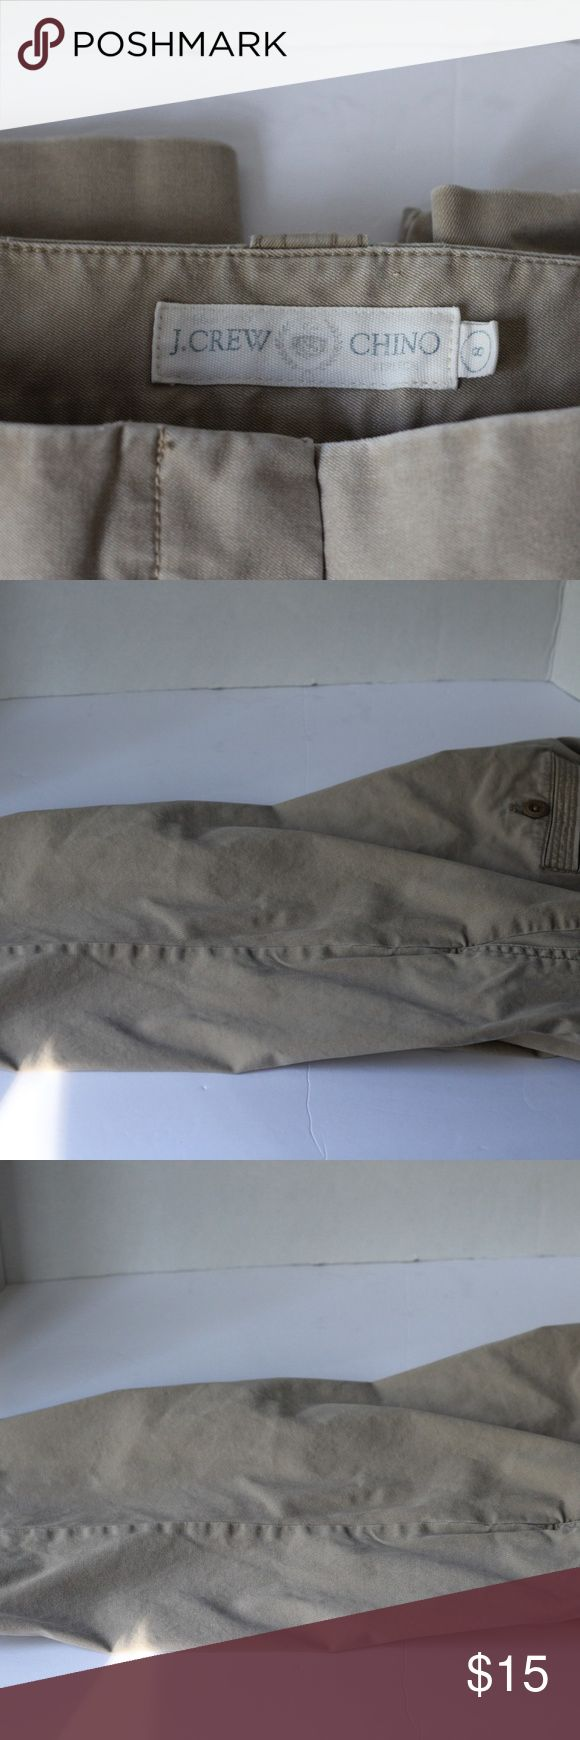 """J. Crew Chino Khaki Capris Size 8 Pre-Loved J. Crew Khaki Chino Capris. Size 8. 97% Cotton, 3% Spandex.  Inseam is approx. 17"""" Approx 27"""" from waist to hem Waist is approx. 16.5"""" when laying flat. J. Crew Pants Capris"""